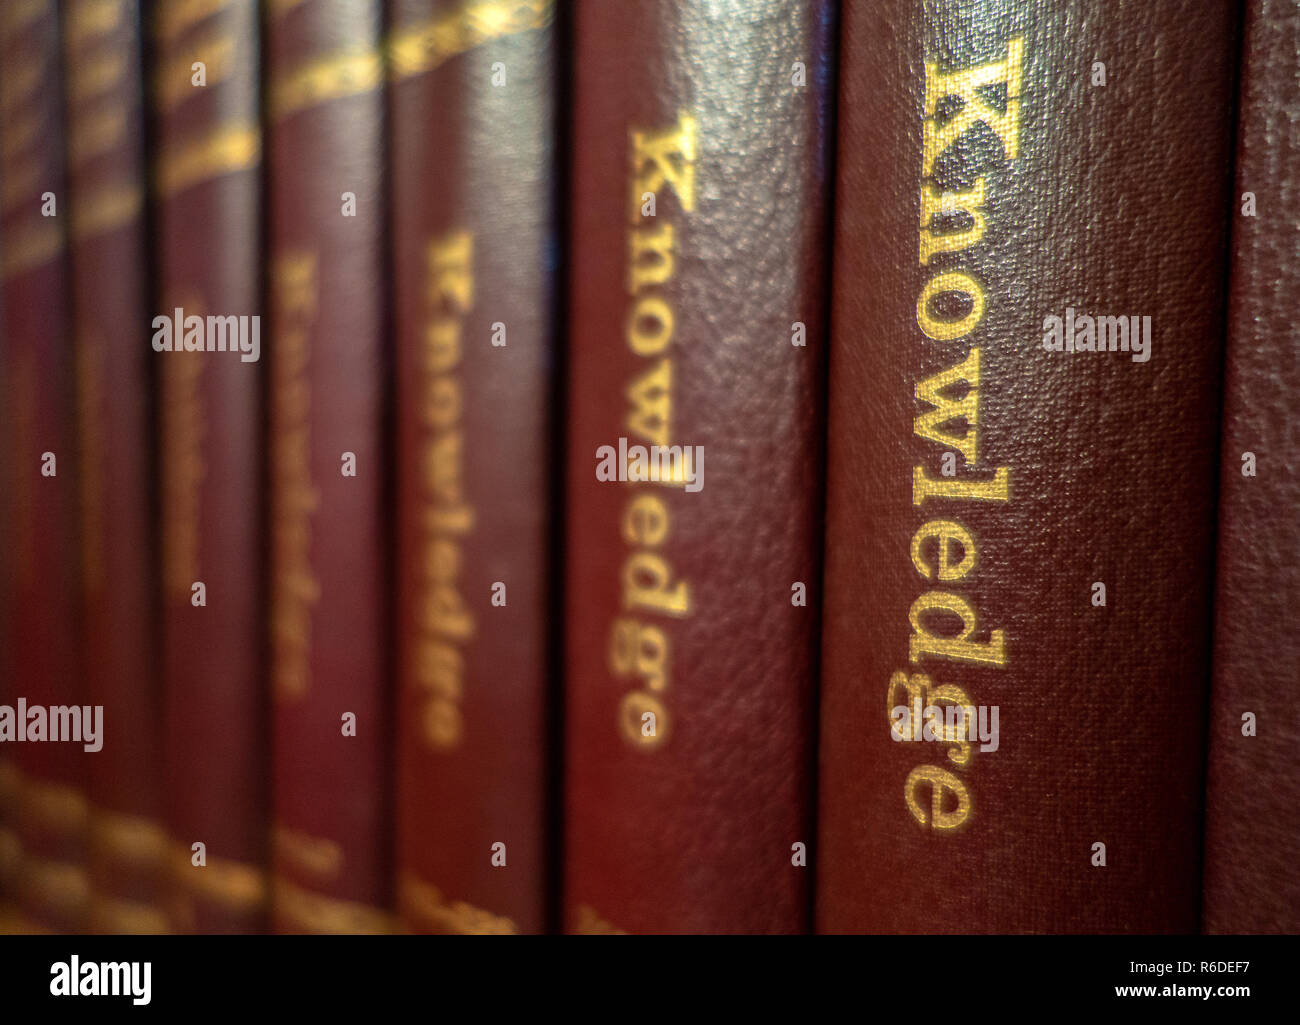 Closeup of a Set of The New World Library of Knowledge Books illustrated Encyclopedia's on a book shelf in an English house - Stock Image